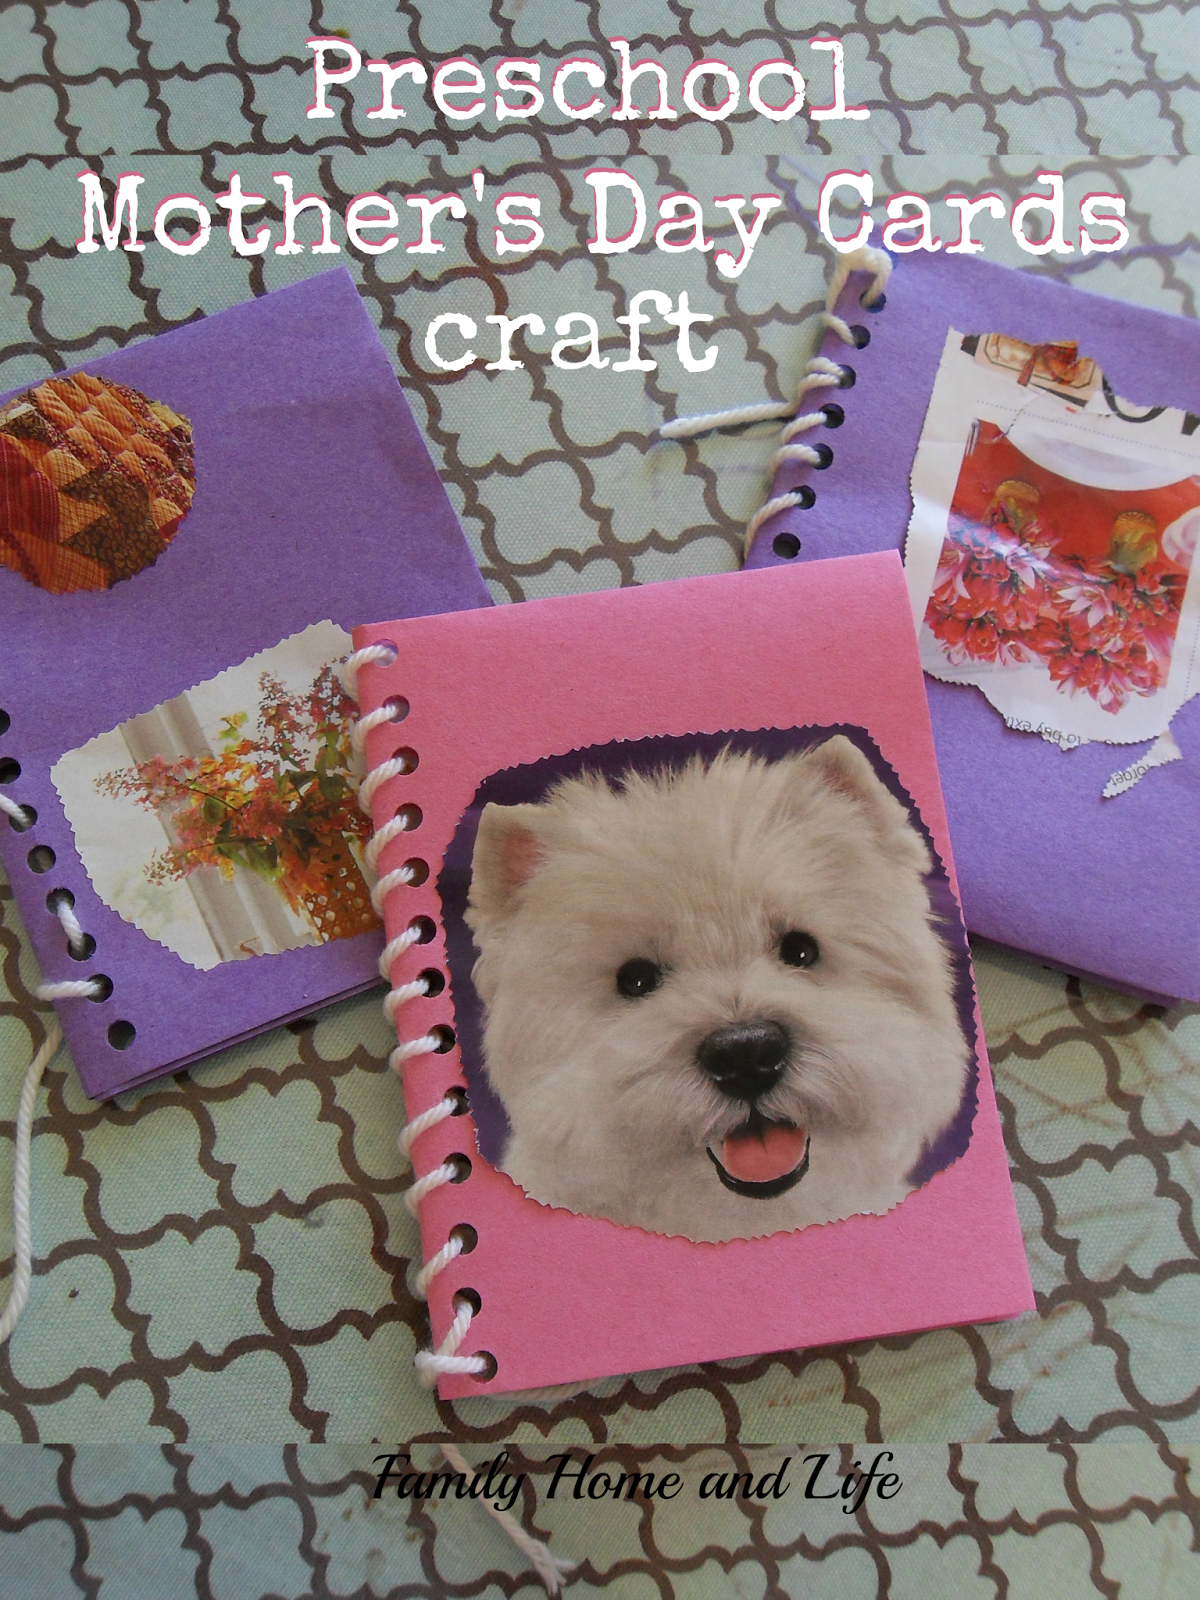 Family Home and Life: Preschool Mother's Day Card Craft